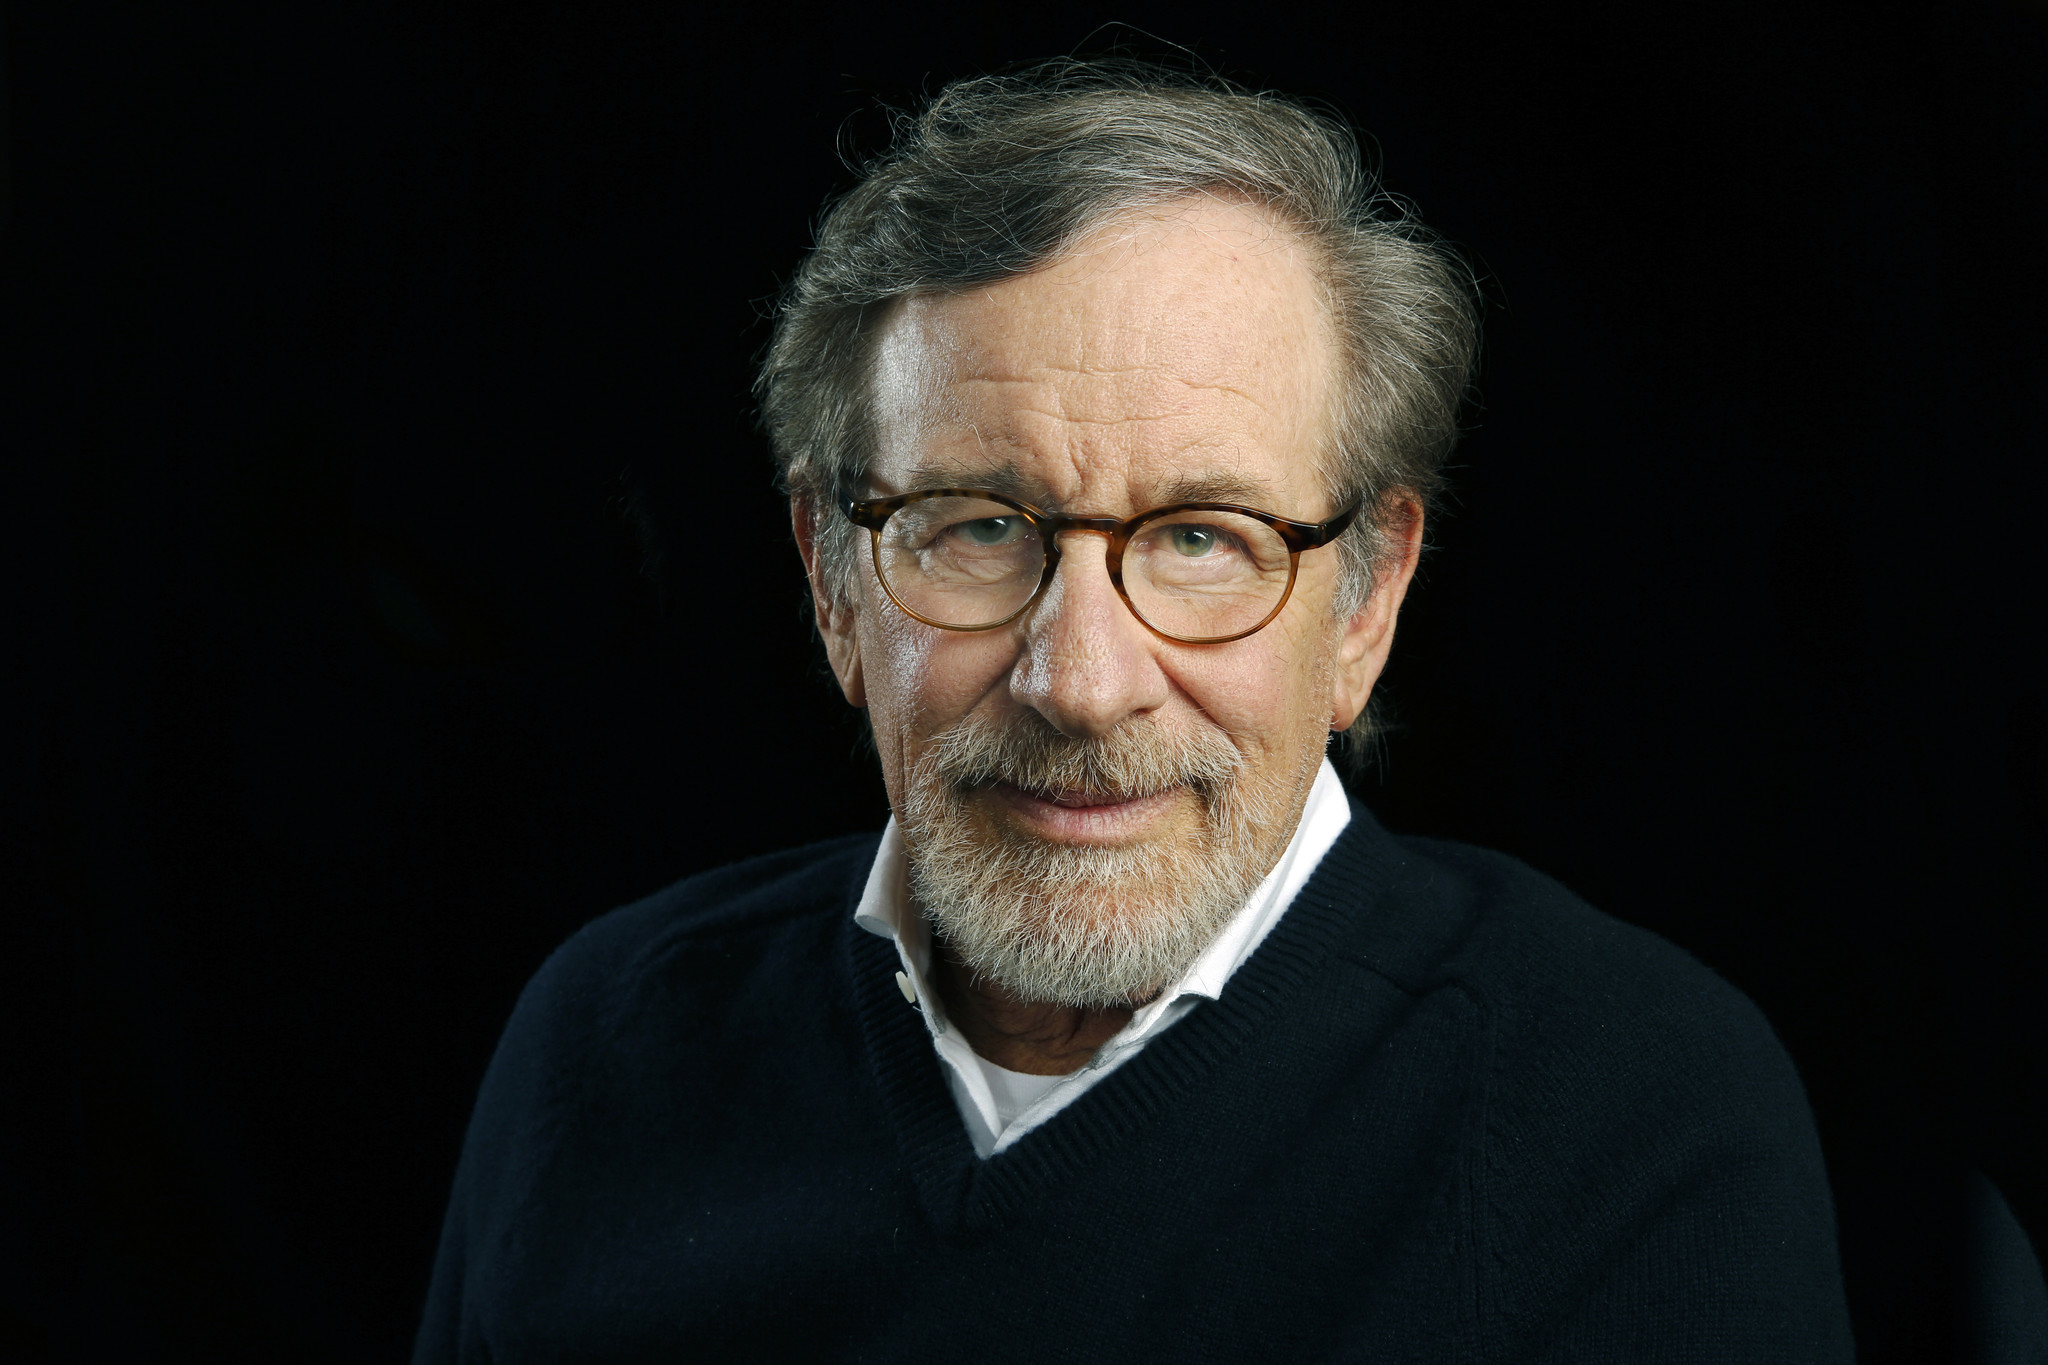 Steven Spielberg  Movies Age amp Wife  Biography